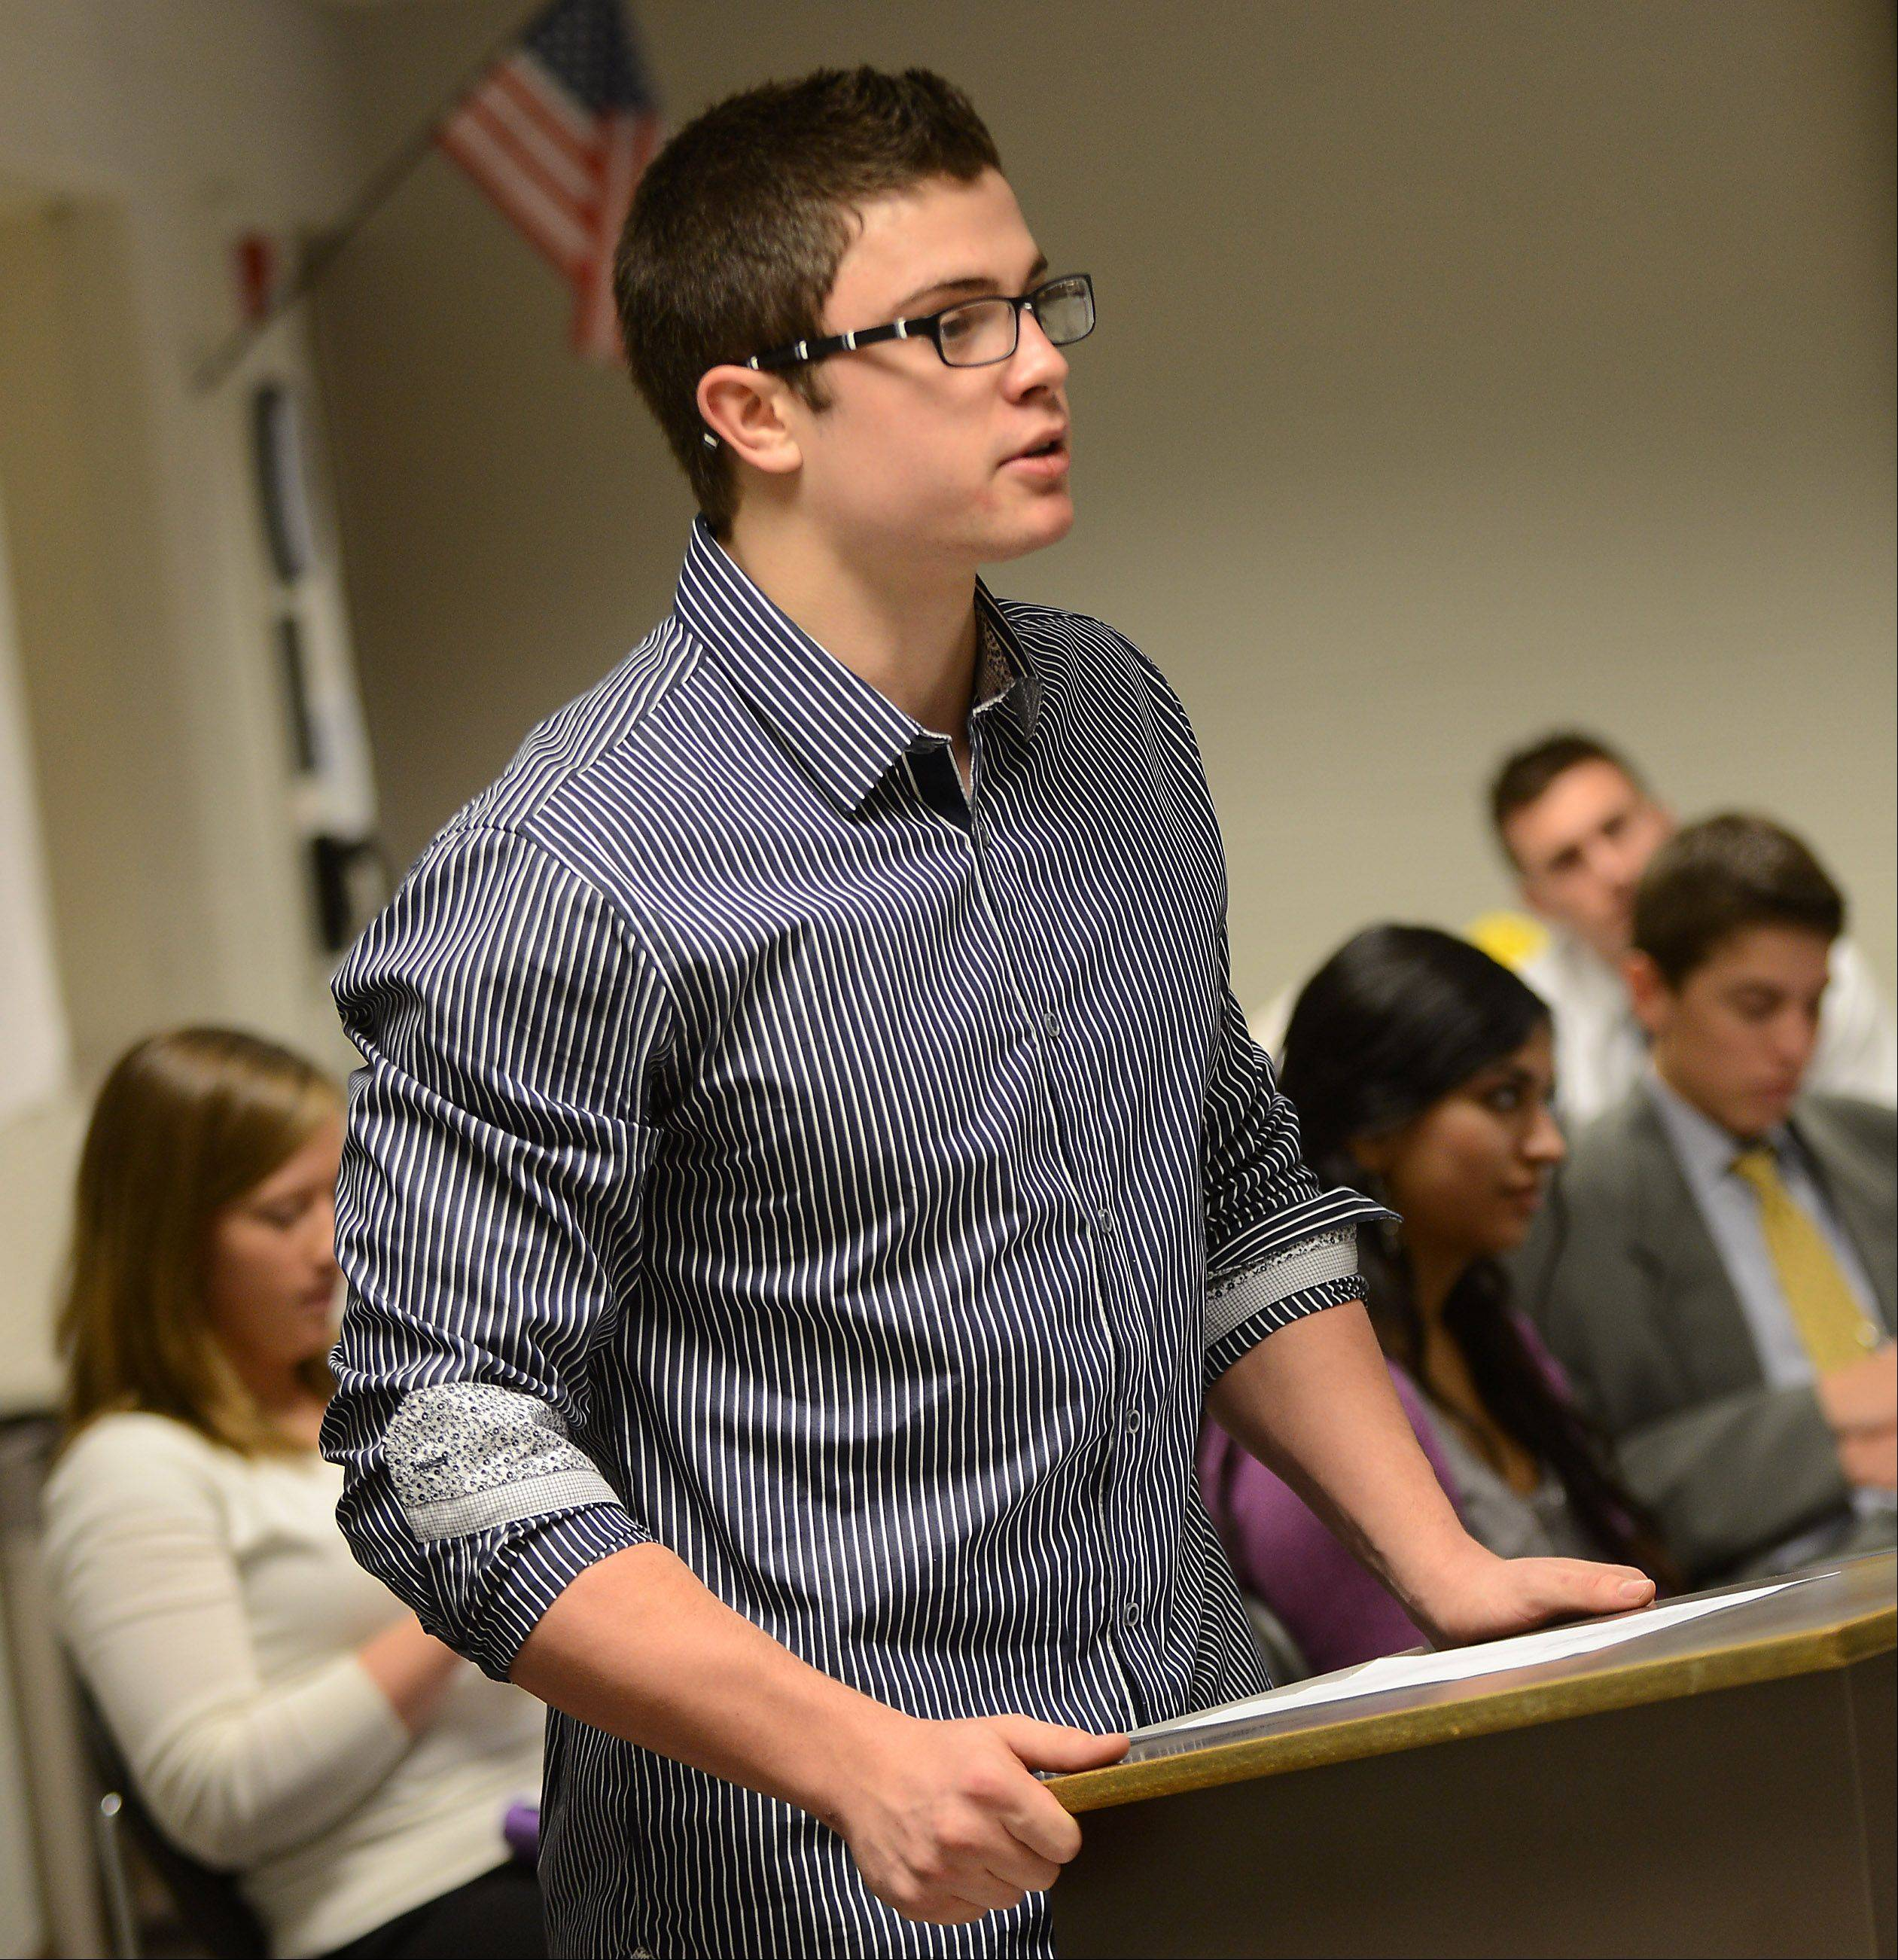 """Defense attorney"" Mitchell Bradberry questions a witness as students at Geneva High School conduct a mock trial Tuesday for a car crash lawsuit that might have involved alcohol."